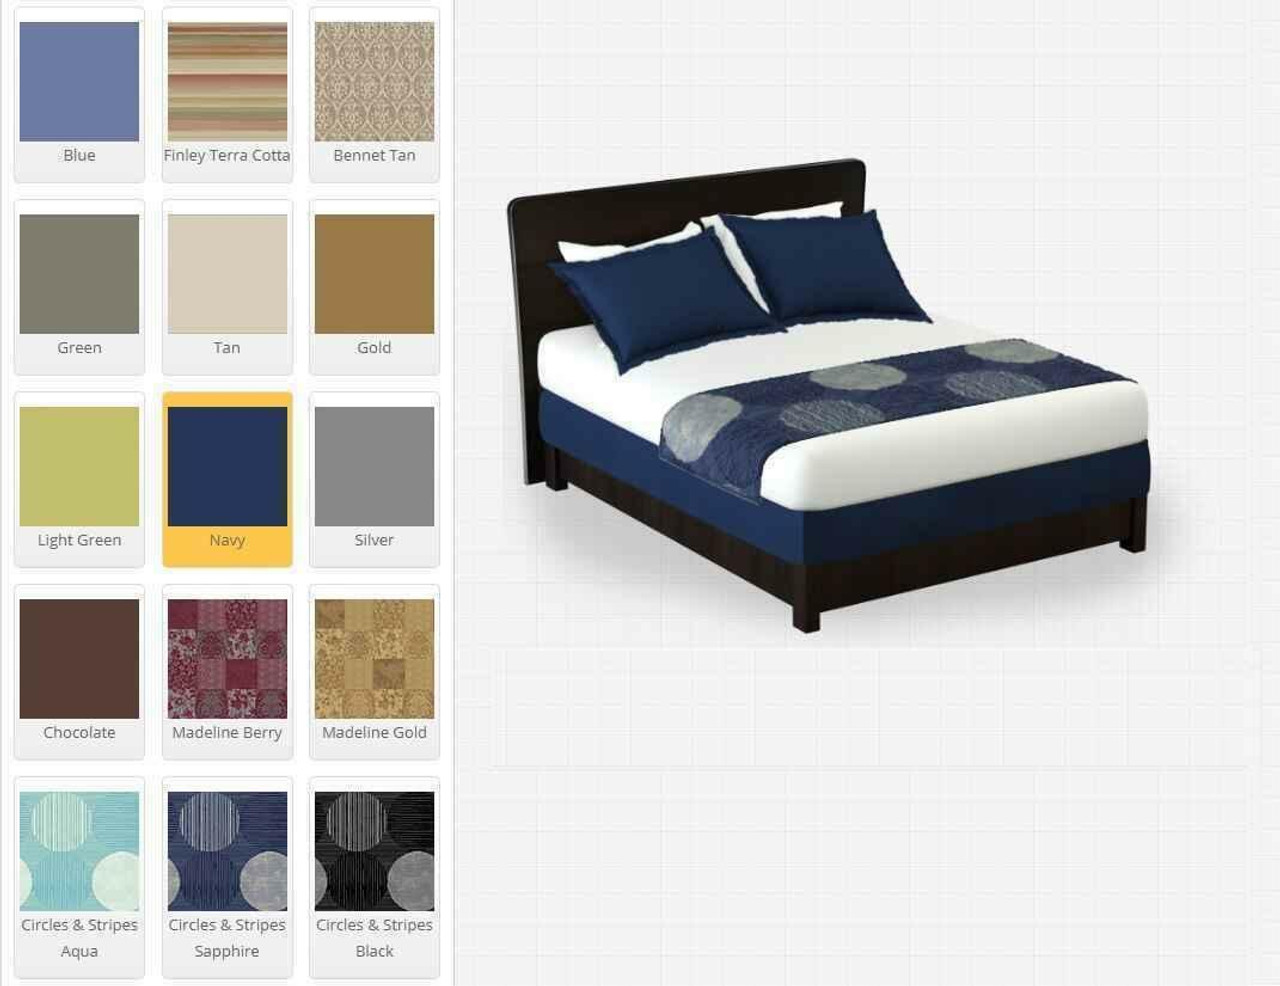 Martex RX Bedding by Westpoint Hospitality Martex Rx Bedding or Box Spring Cover - All Styles